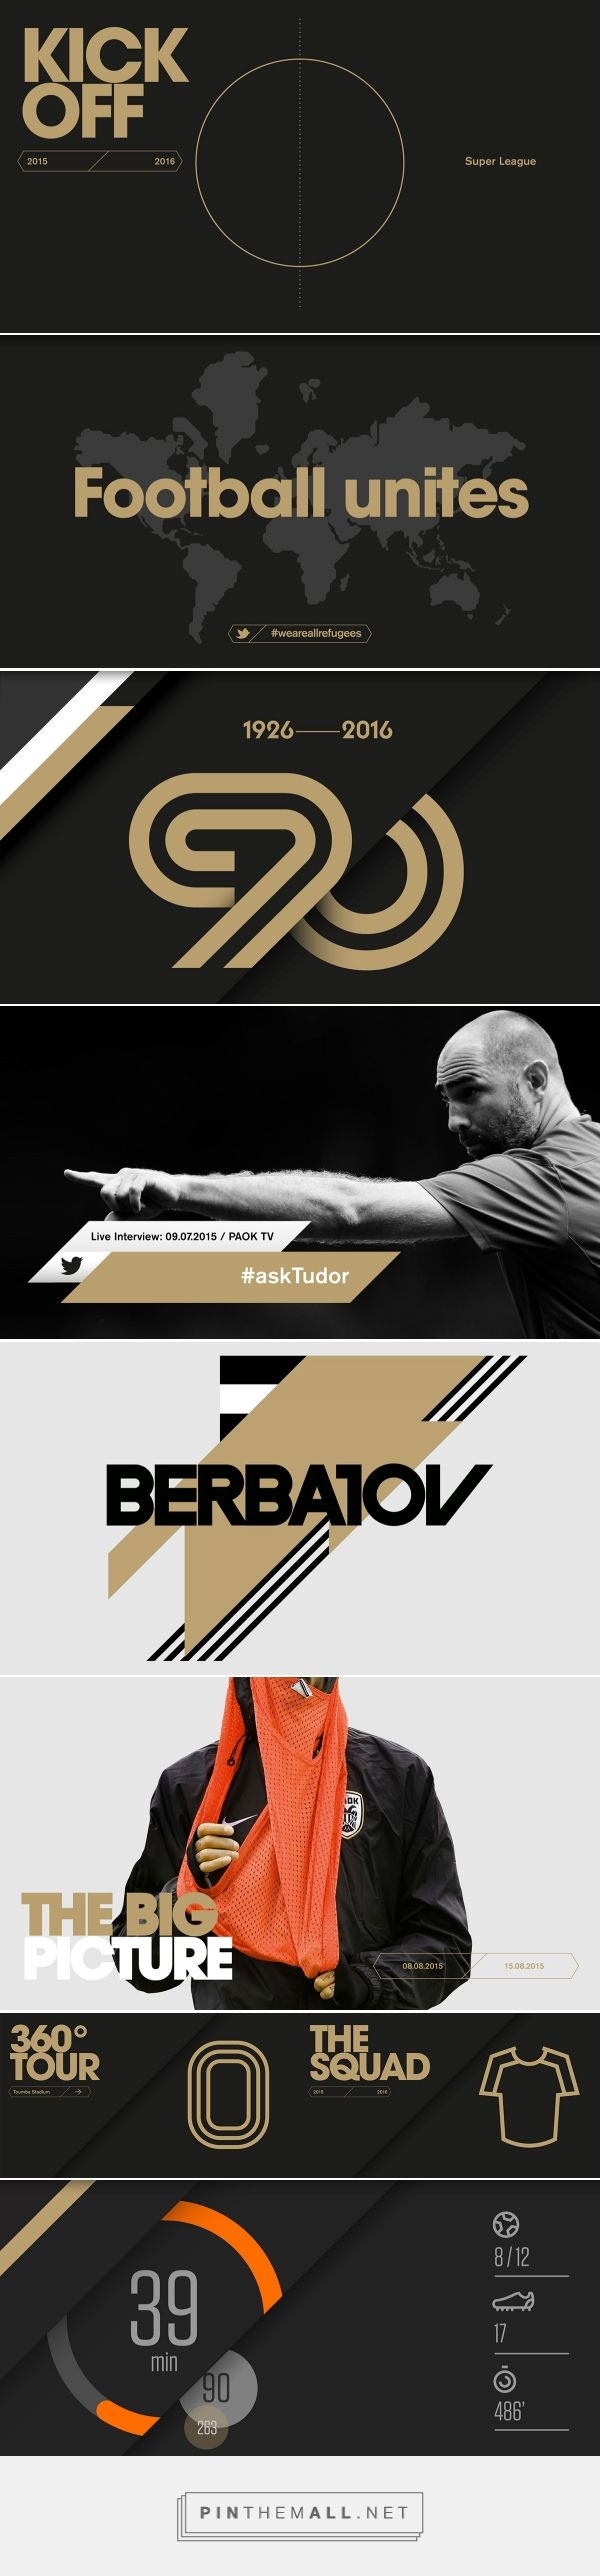 PAOK FC / The visual language of football on Branding Served - created via https://pinthemall.net